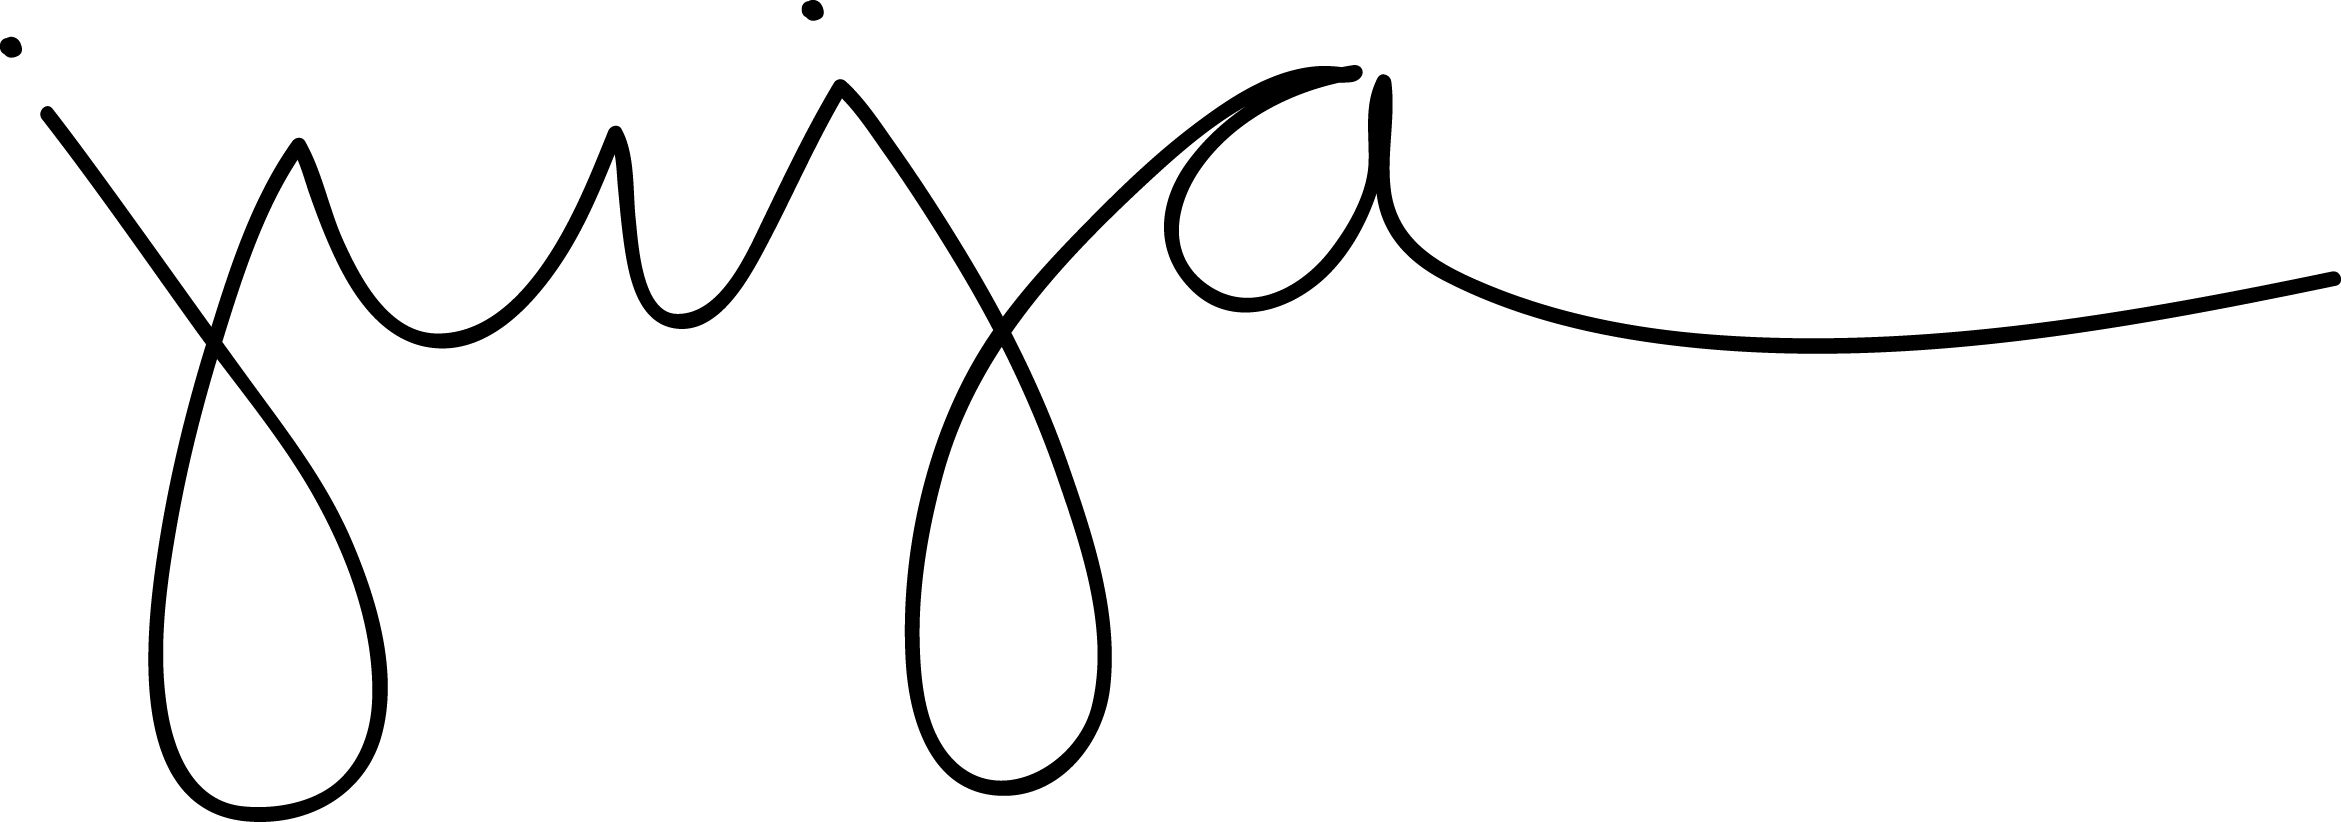 Julé CARRUTH's Signature